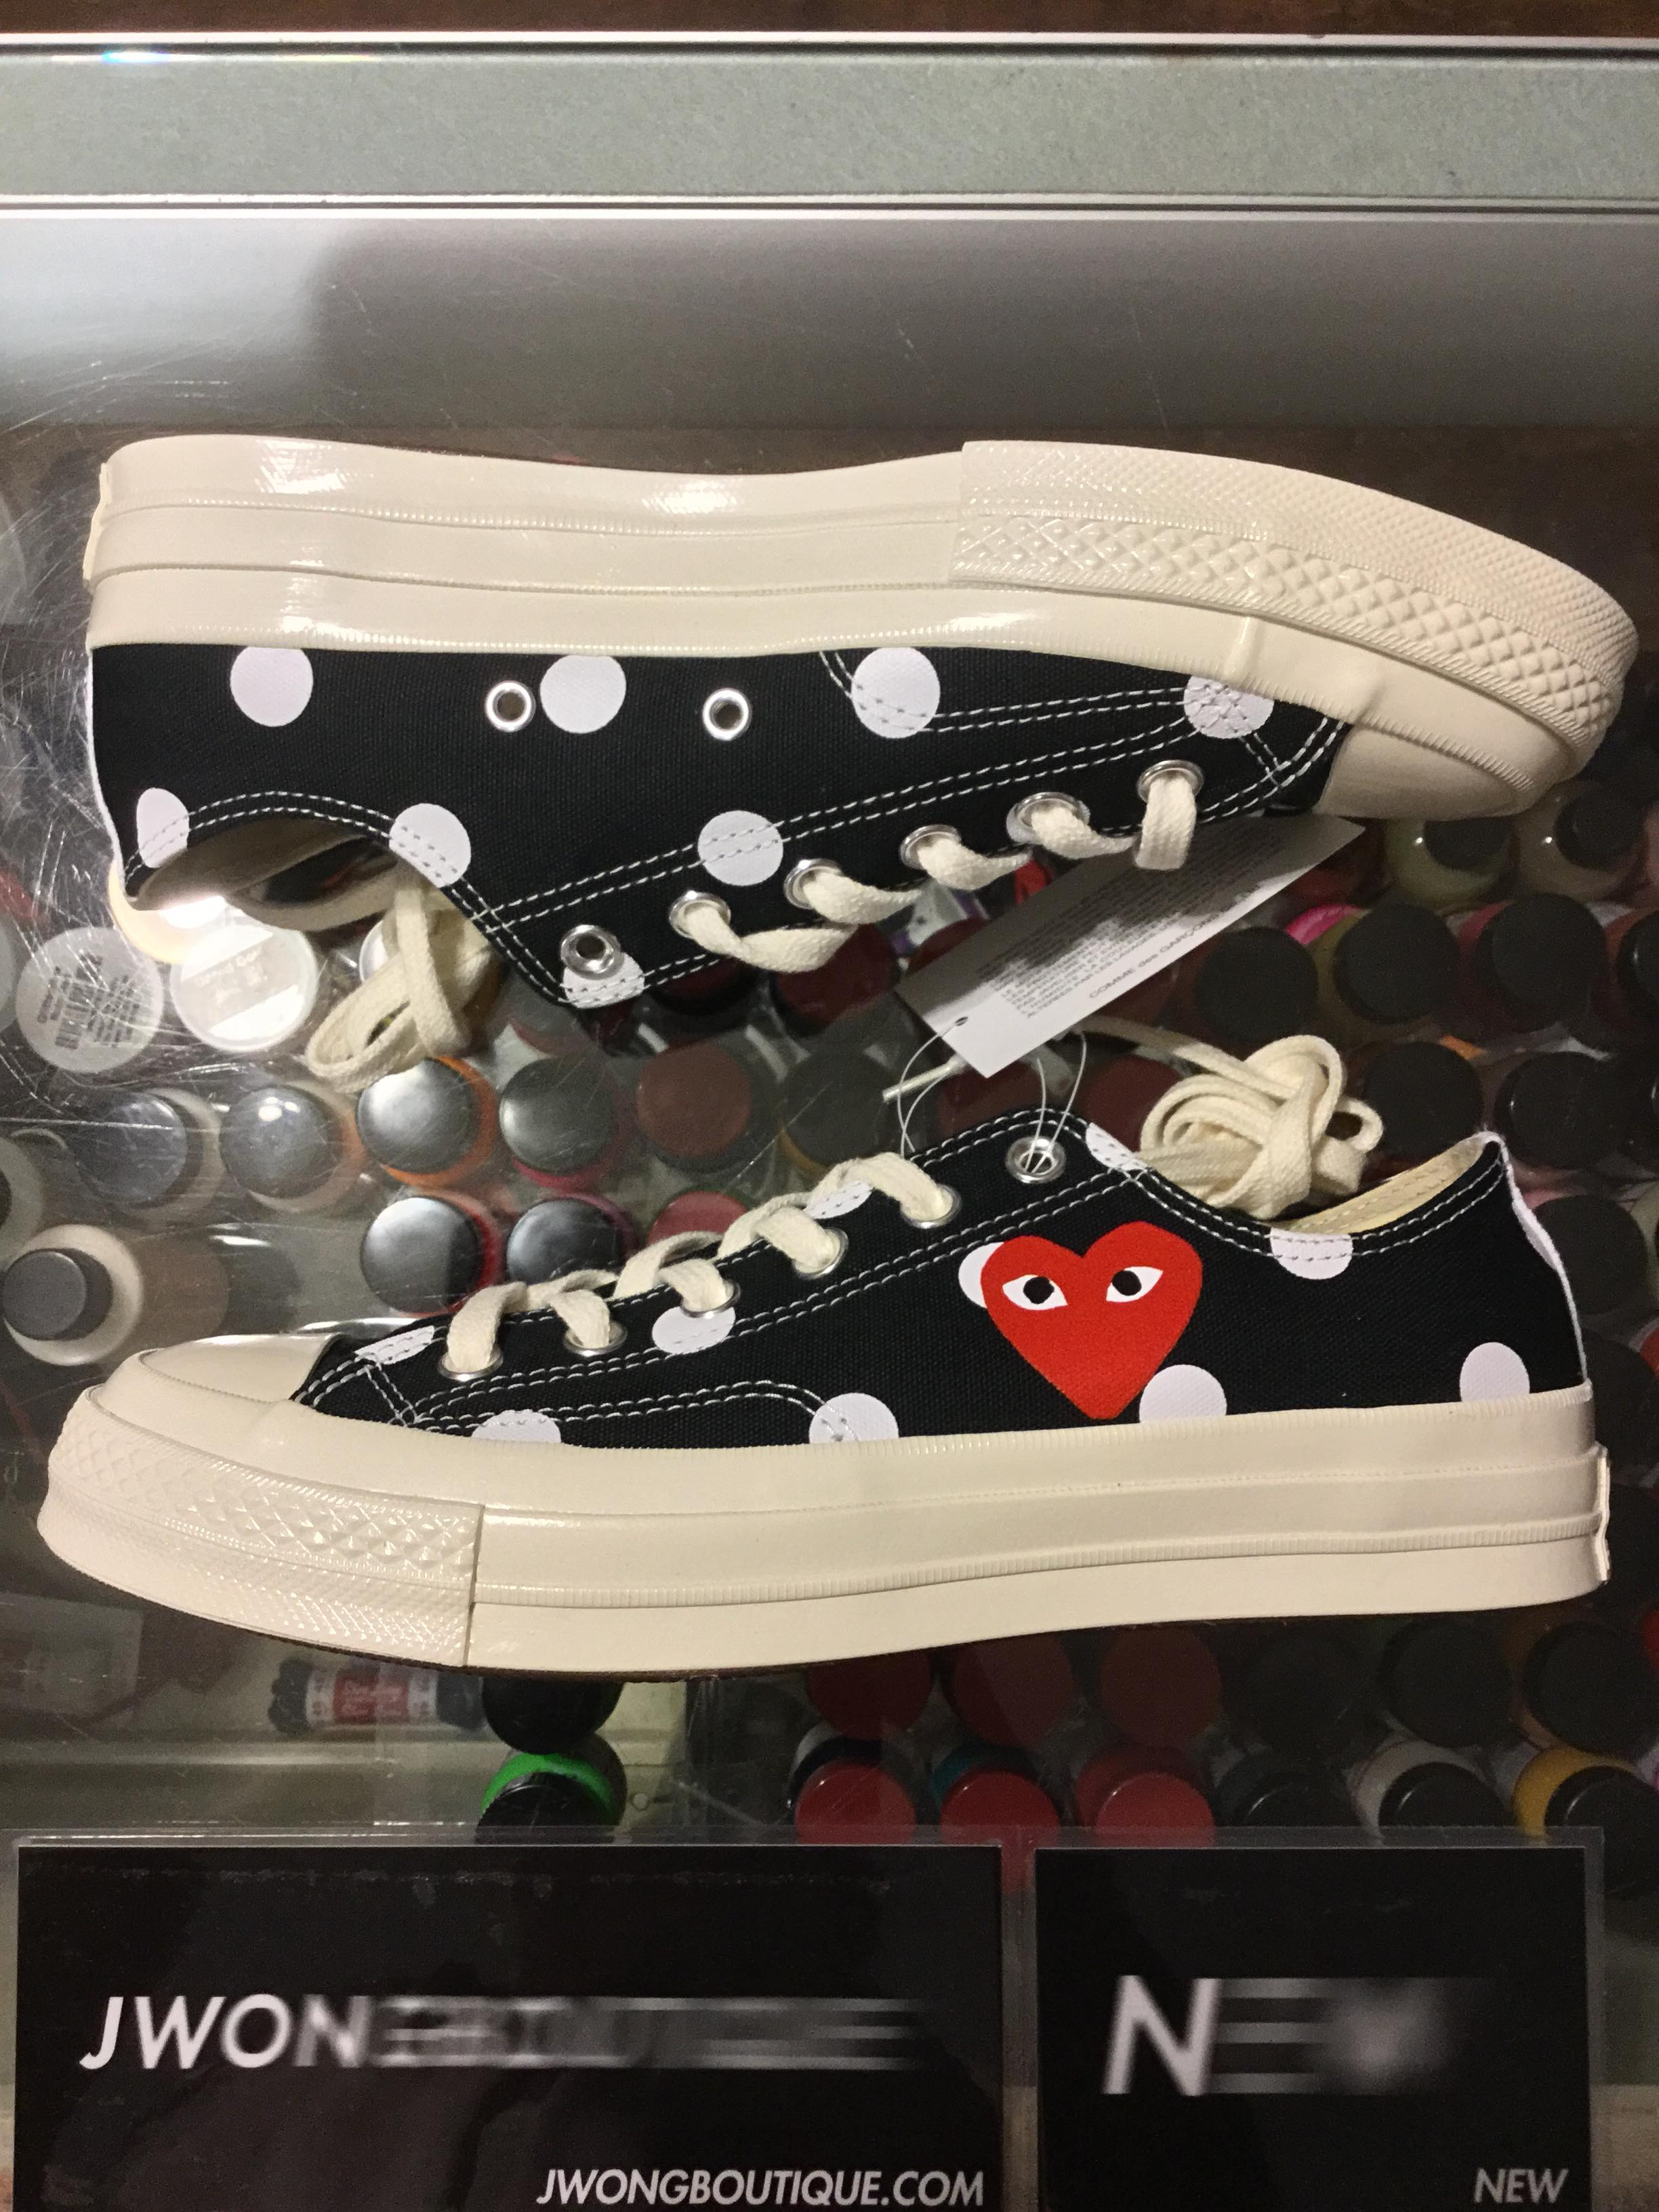 385b74be88a9 2017 Converse Chuck Taylor Low All-Star 70s Ox Comme des Garcons ...